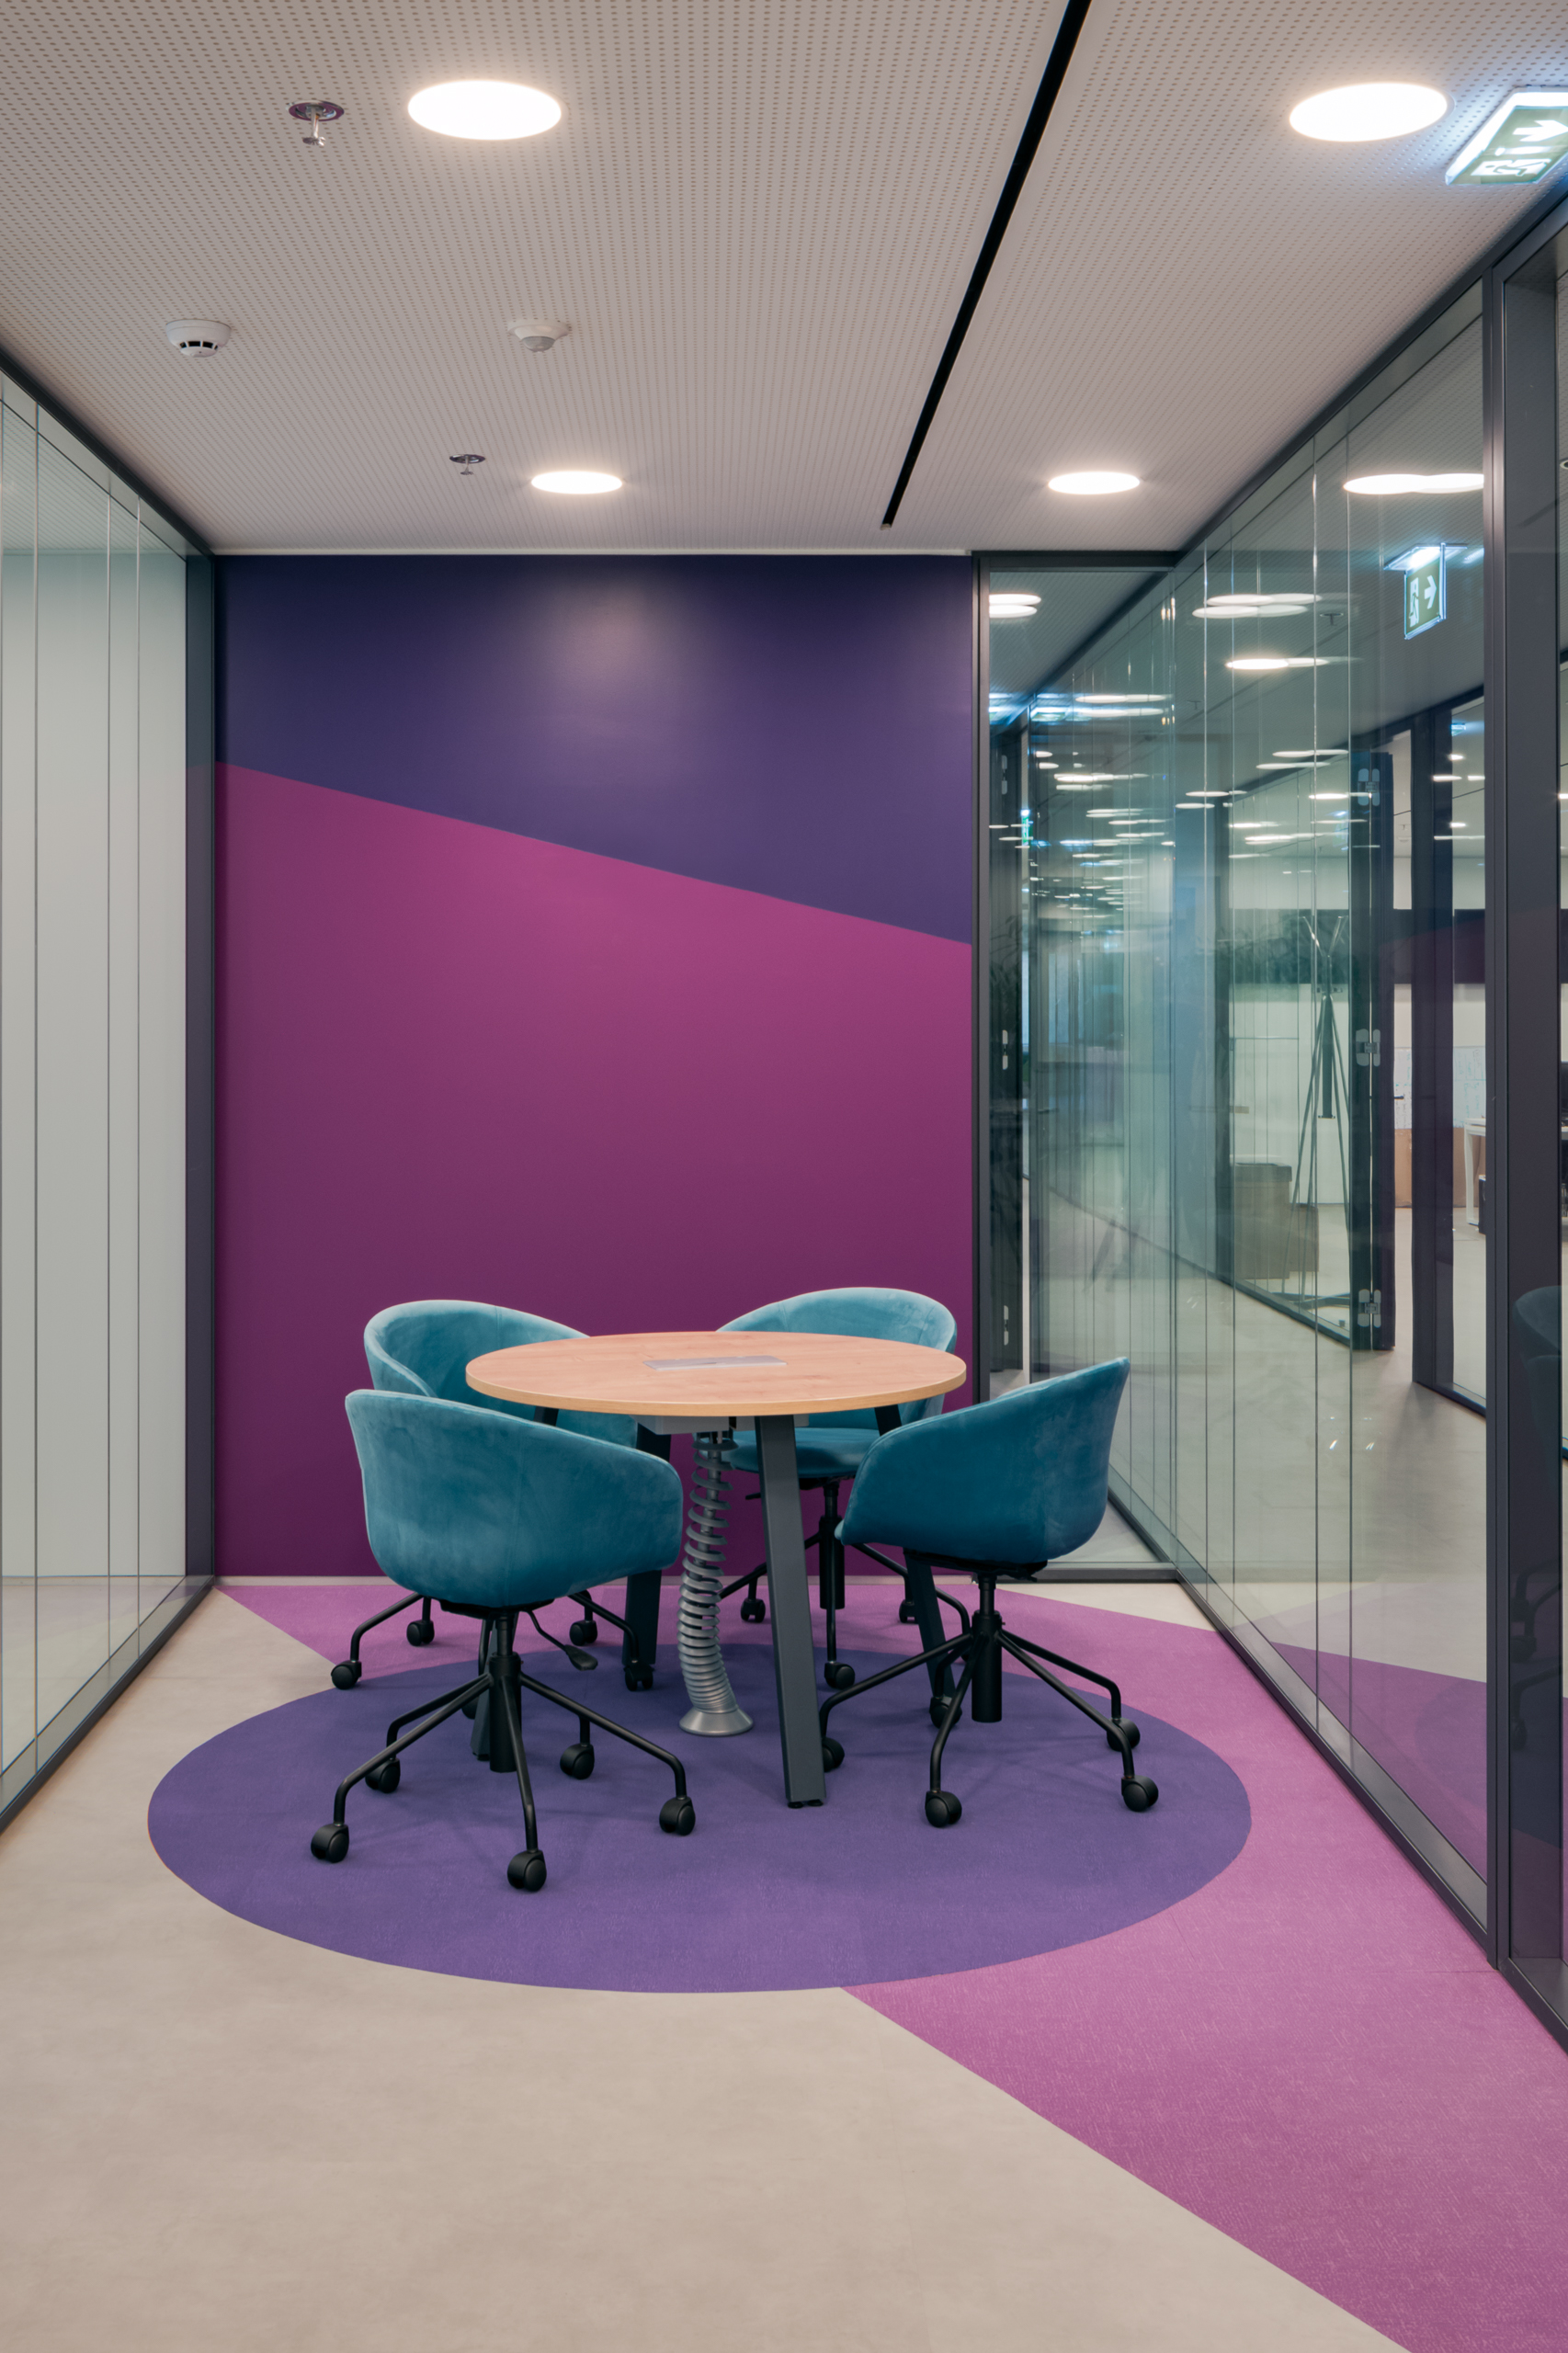 Meeting room designed by Stavropoulou architects